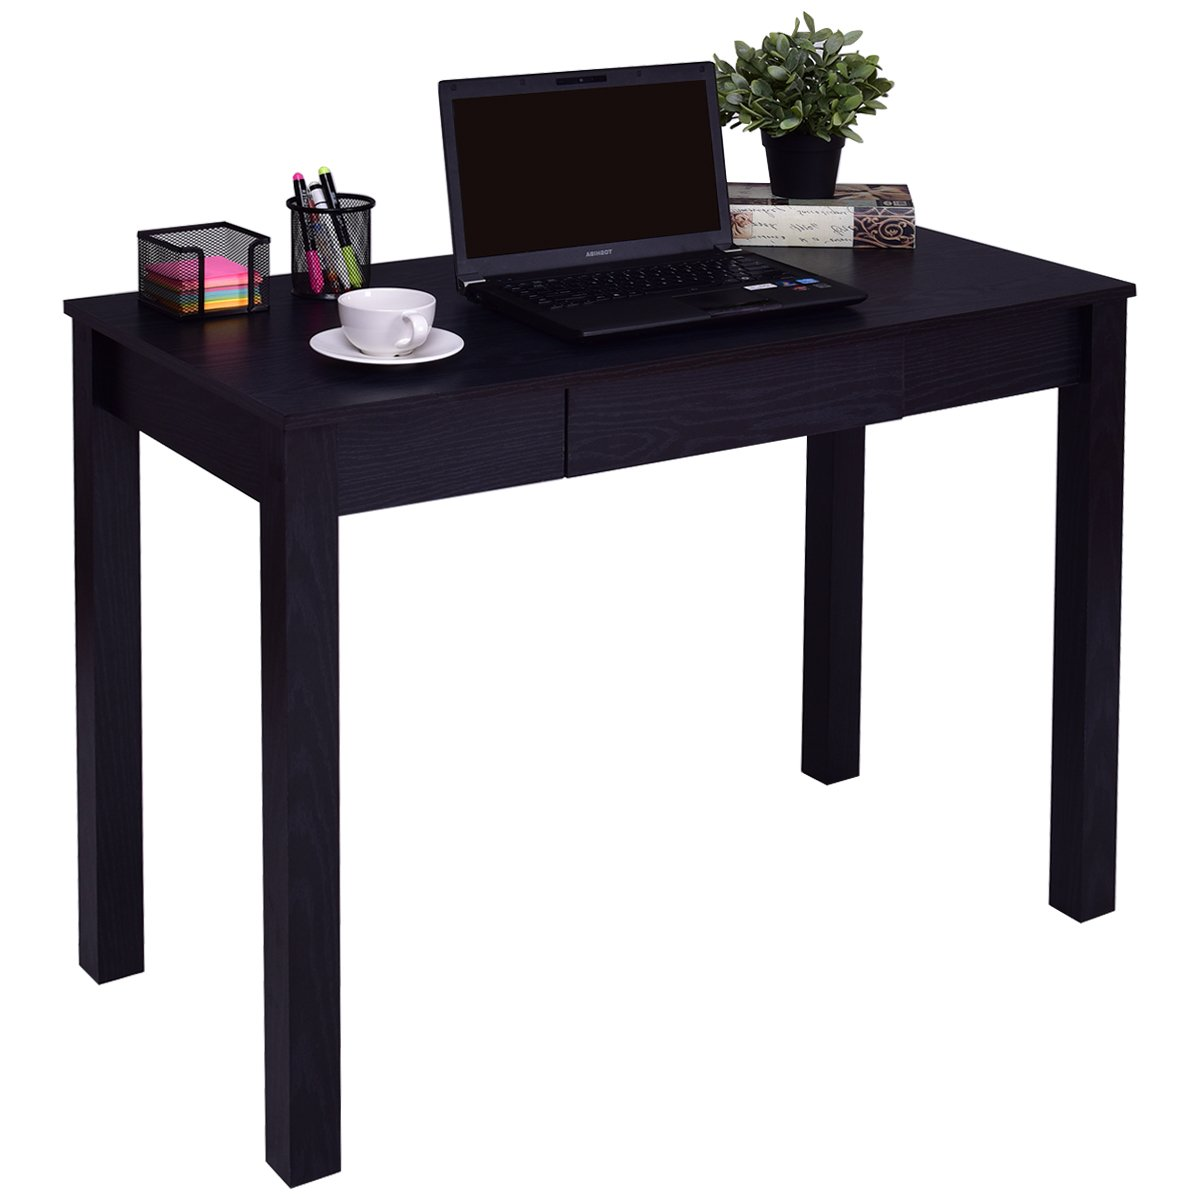 TANGKULA Writing Study Table,Computer Desk Drawer, Home Office Compact Efficient Laptop PC Desk, Wood Workstation Writing Study Desk (Black)